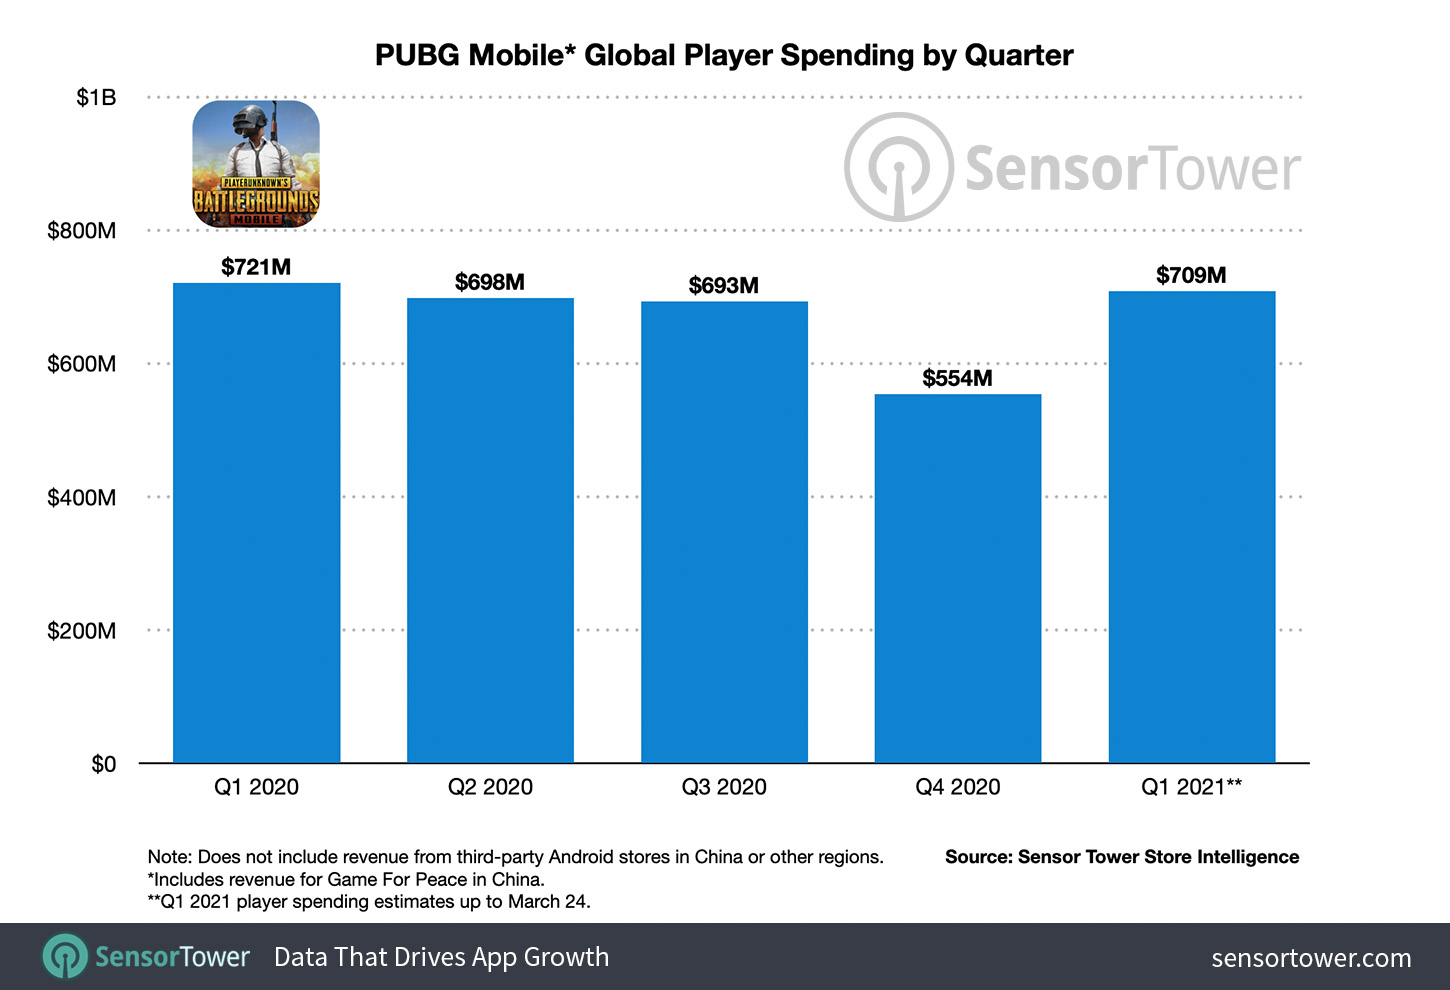 PUBG Mobile * Global player spending by quarter